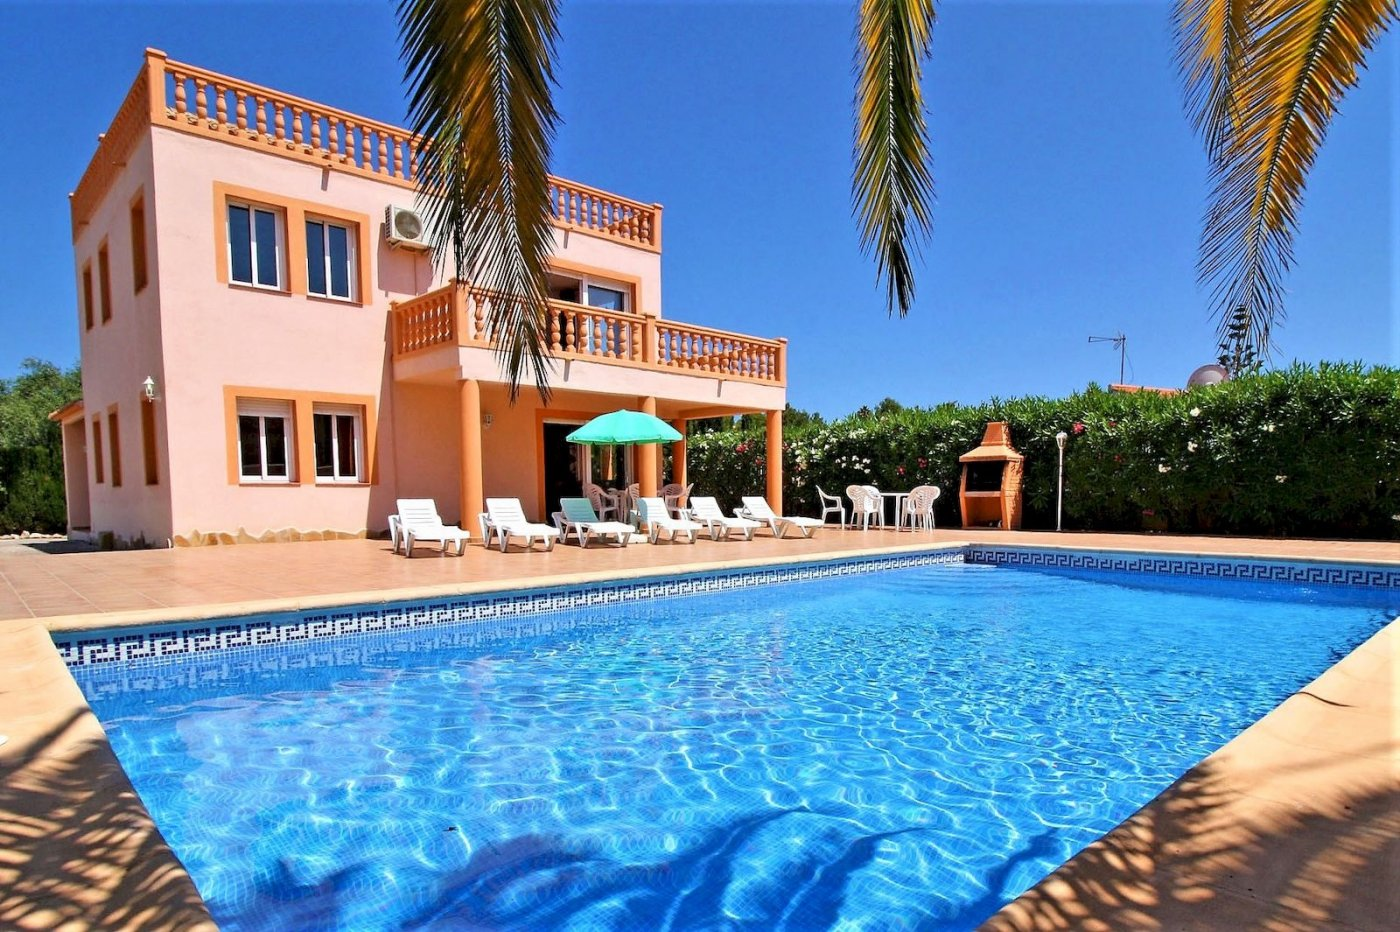 5 Bedroom Villa in Calpe